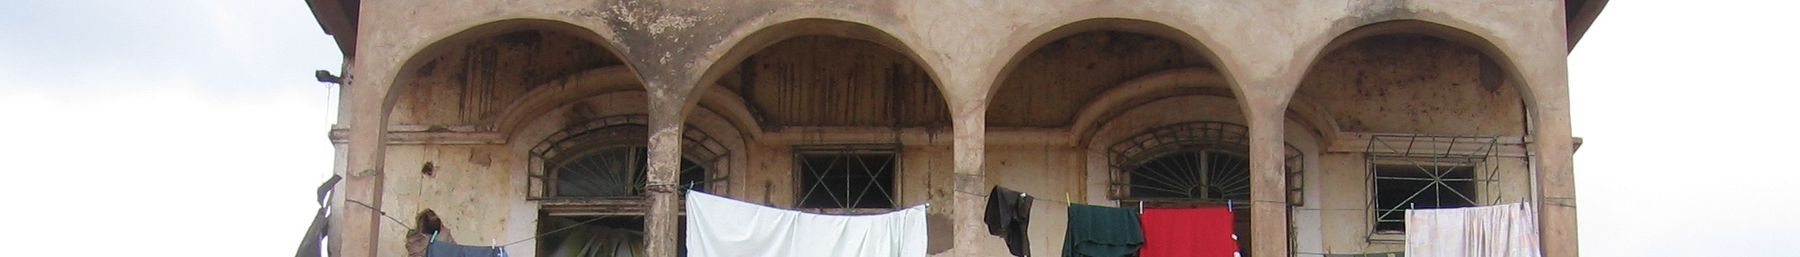 WV banner Bissau Clothes on old building.jpg